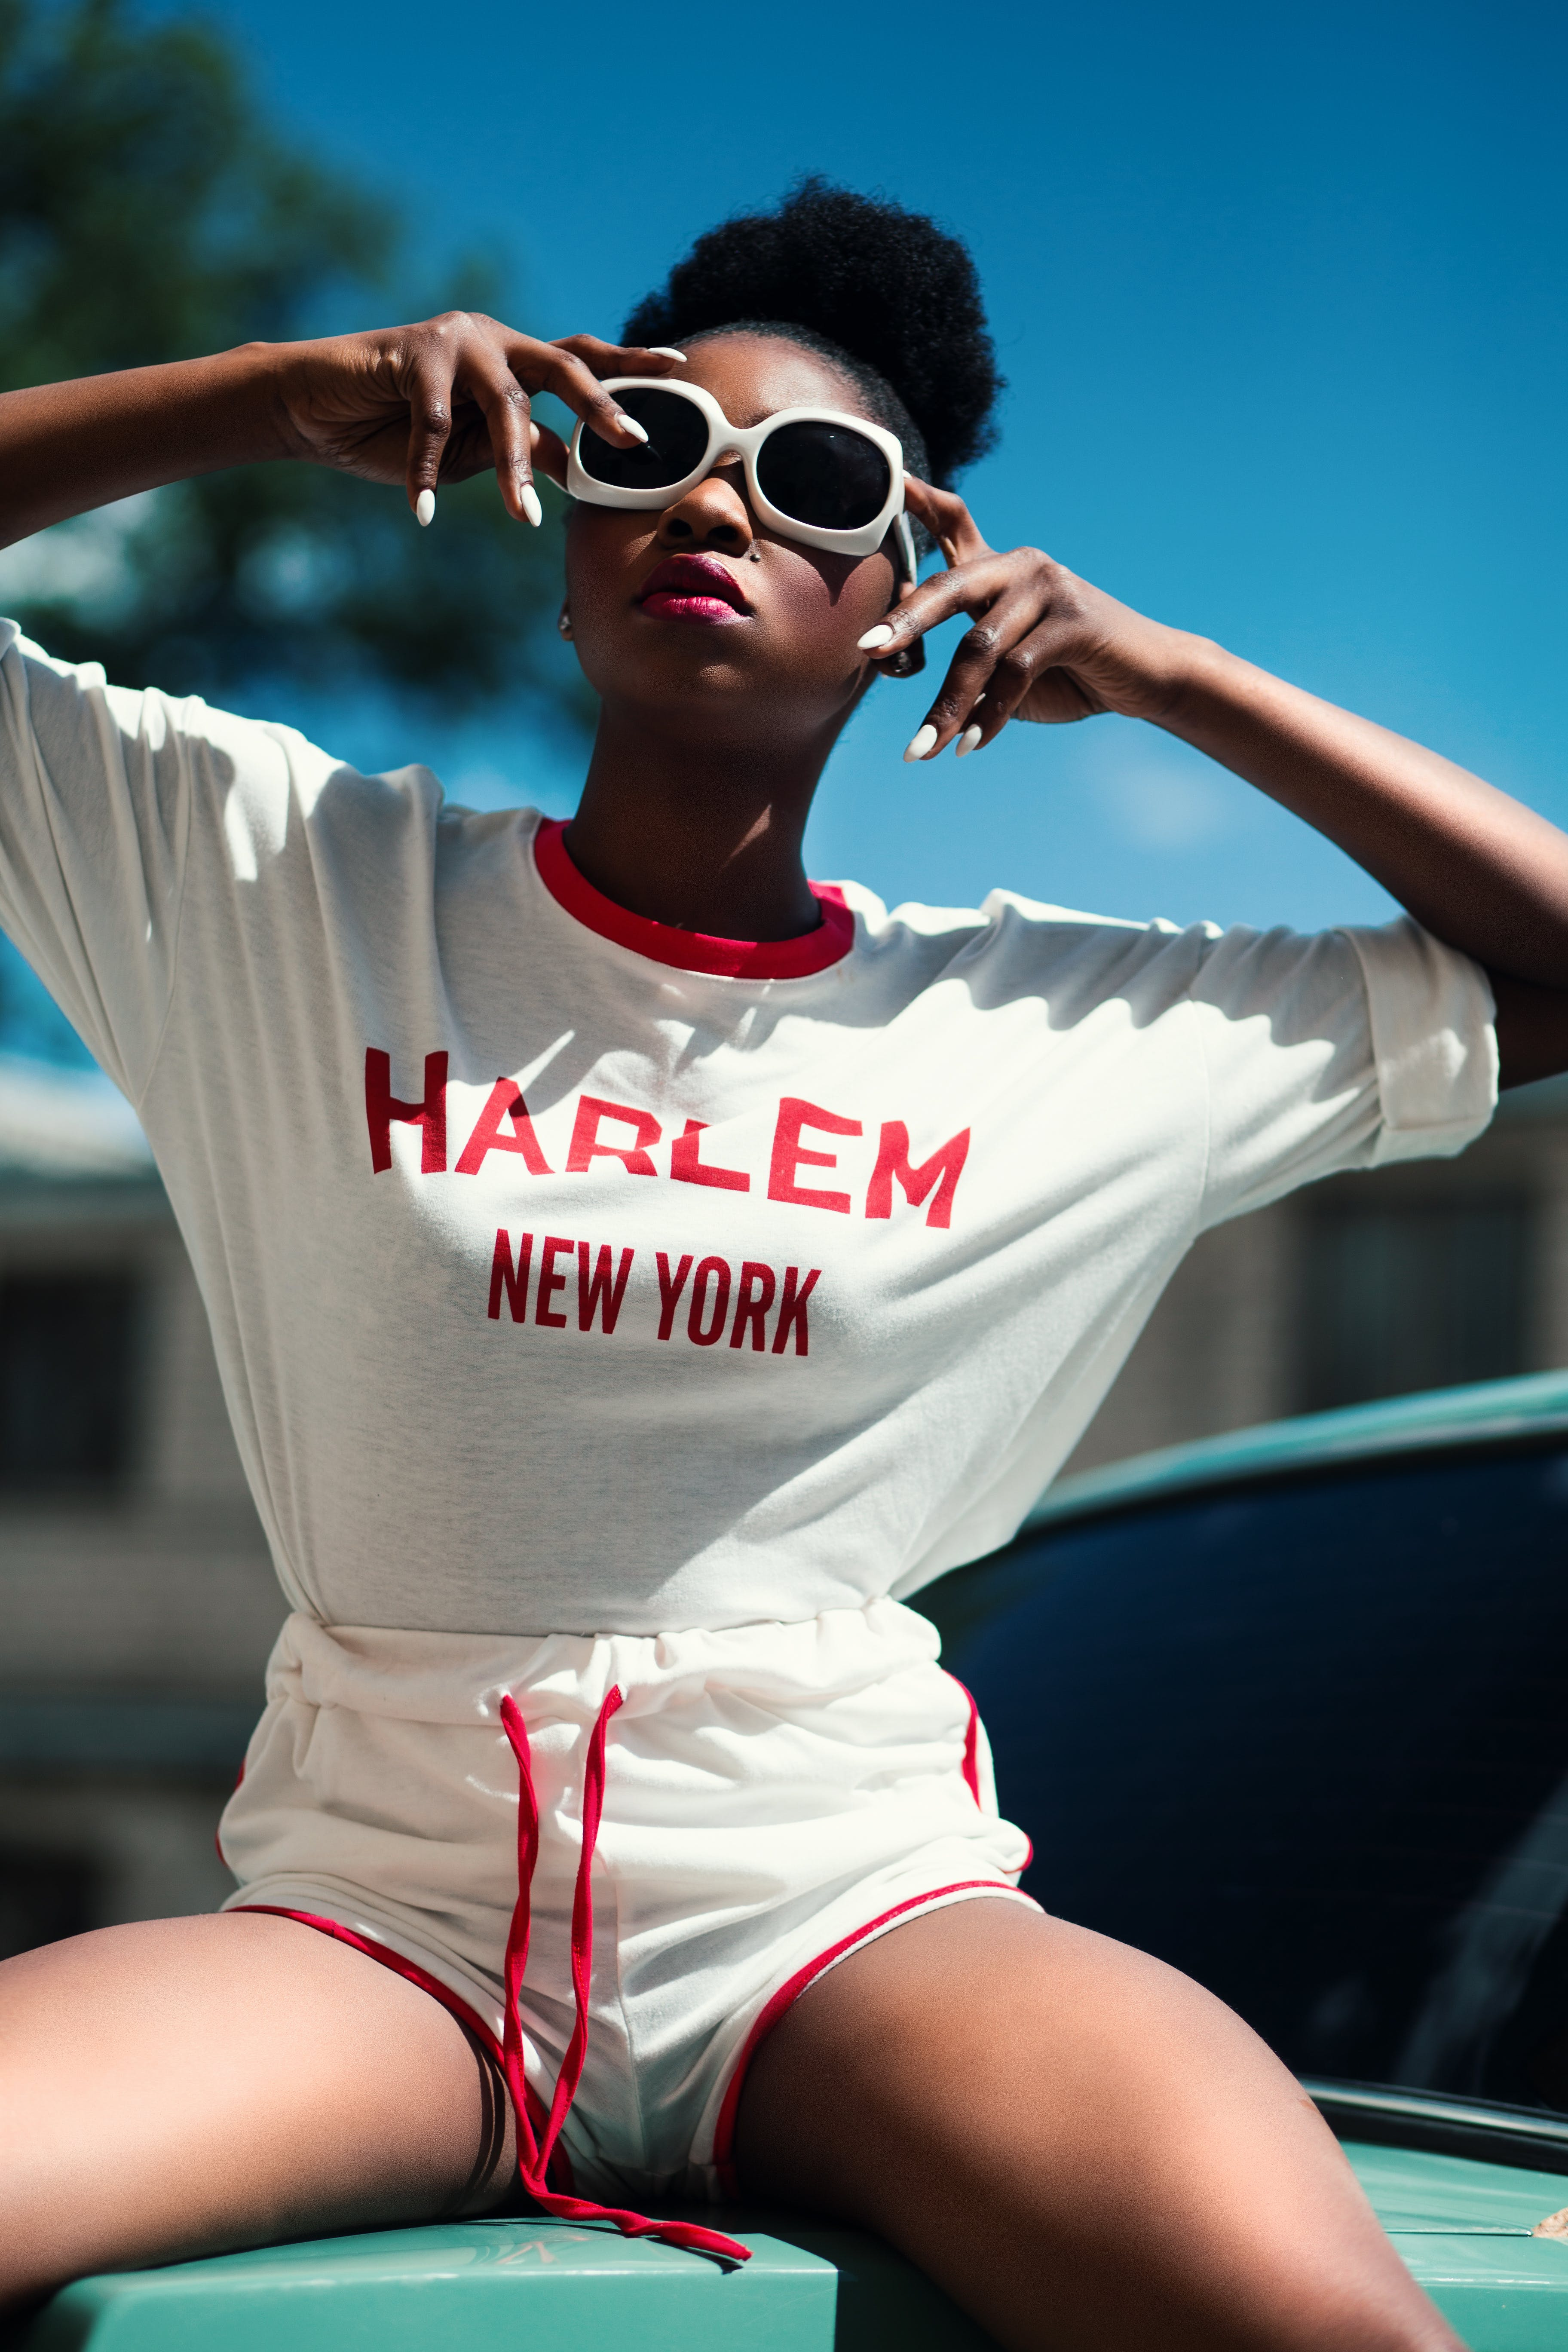 Woman Wearing White and Red Harlem New York Printed Round-neck Batwing-sleeved Shirt With Drawstring Dolphin Shorts